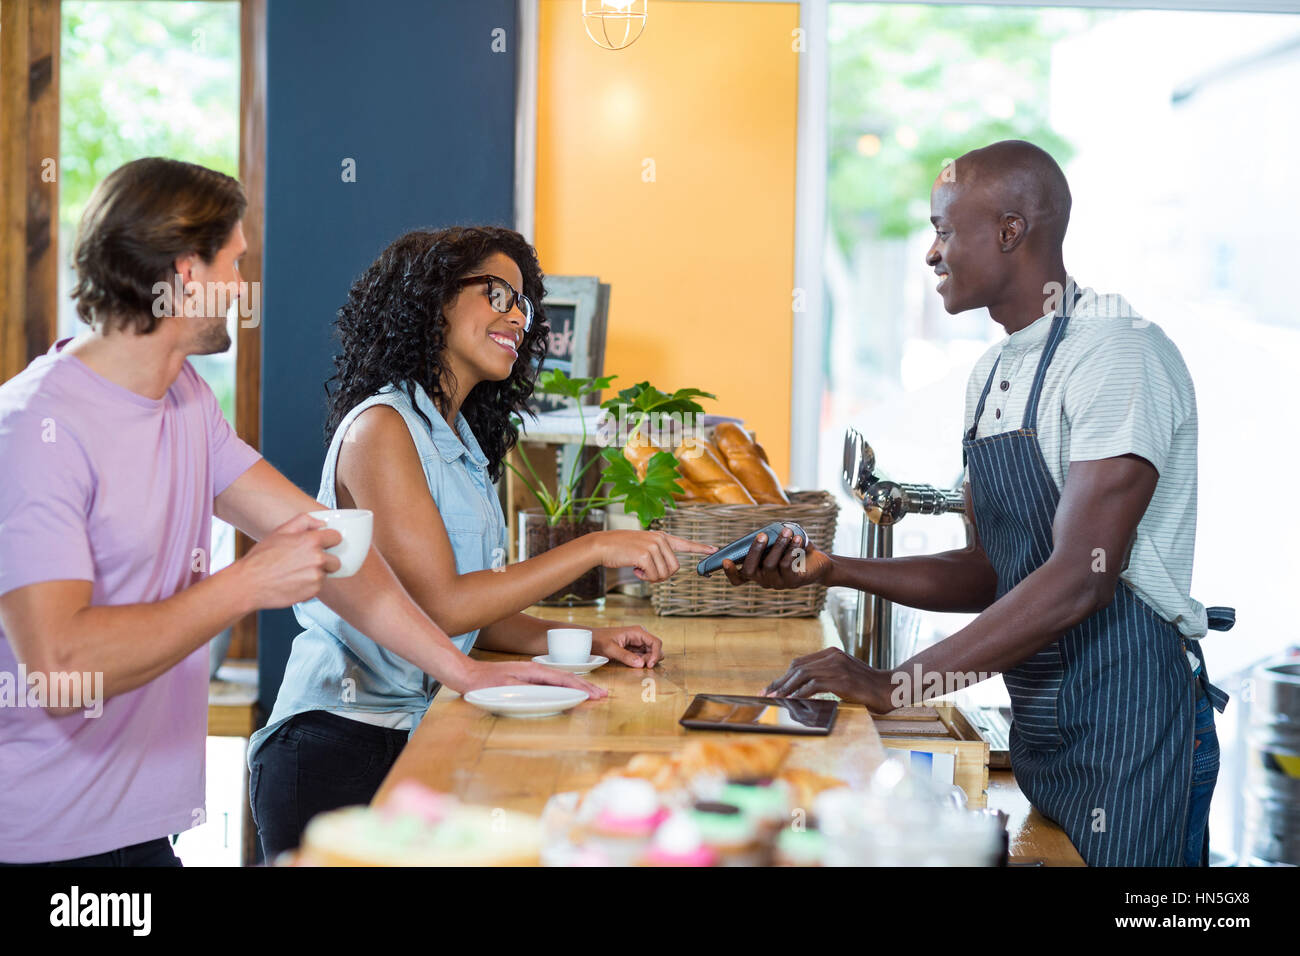 Woman entering pin code on credit card reader at counter in café Stock Photo